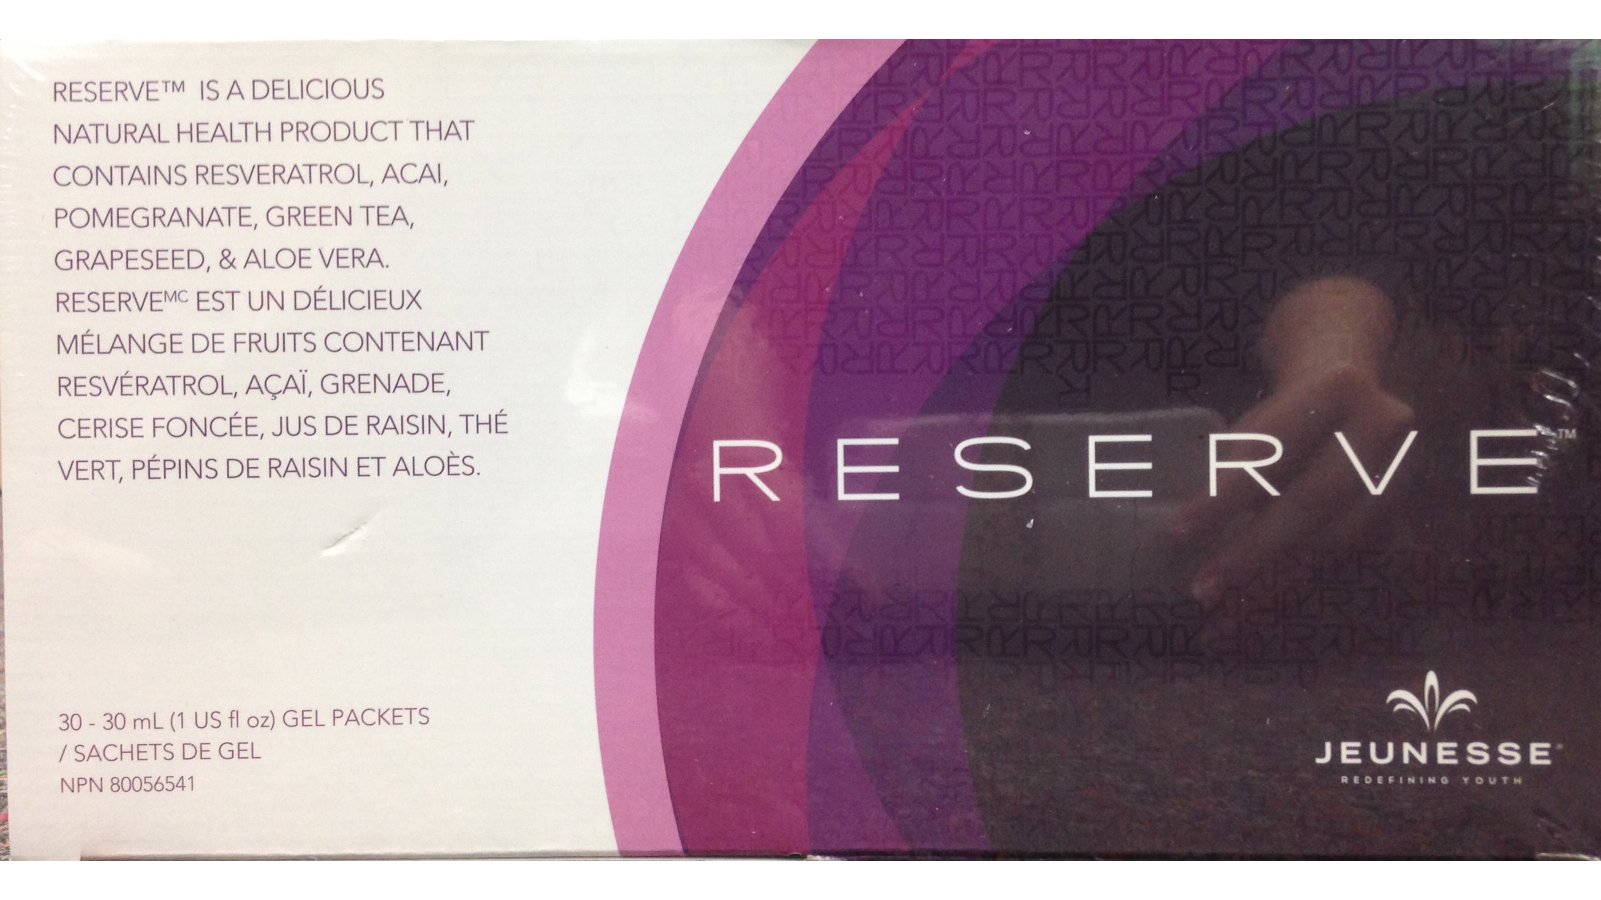 Pack-of-3 Boxes Jeunesse Reserve Antioxidant Botanical Fruit Blend -3x30 (1 Oz) Gel Packets